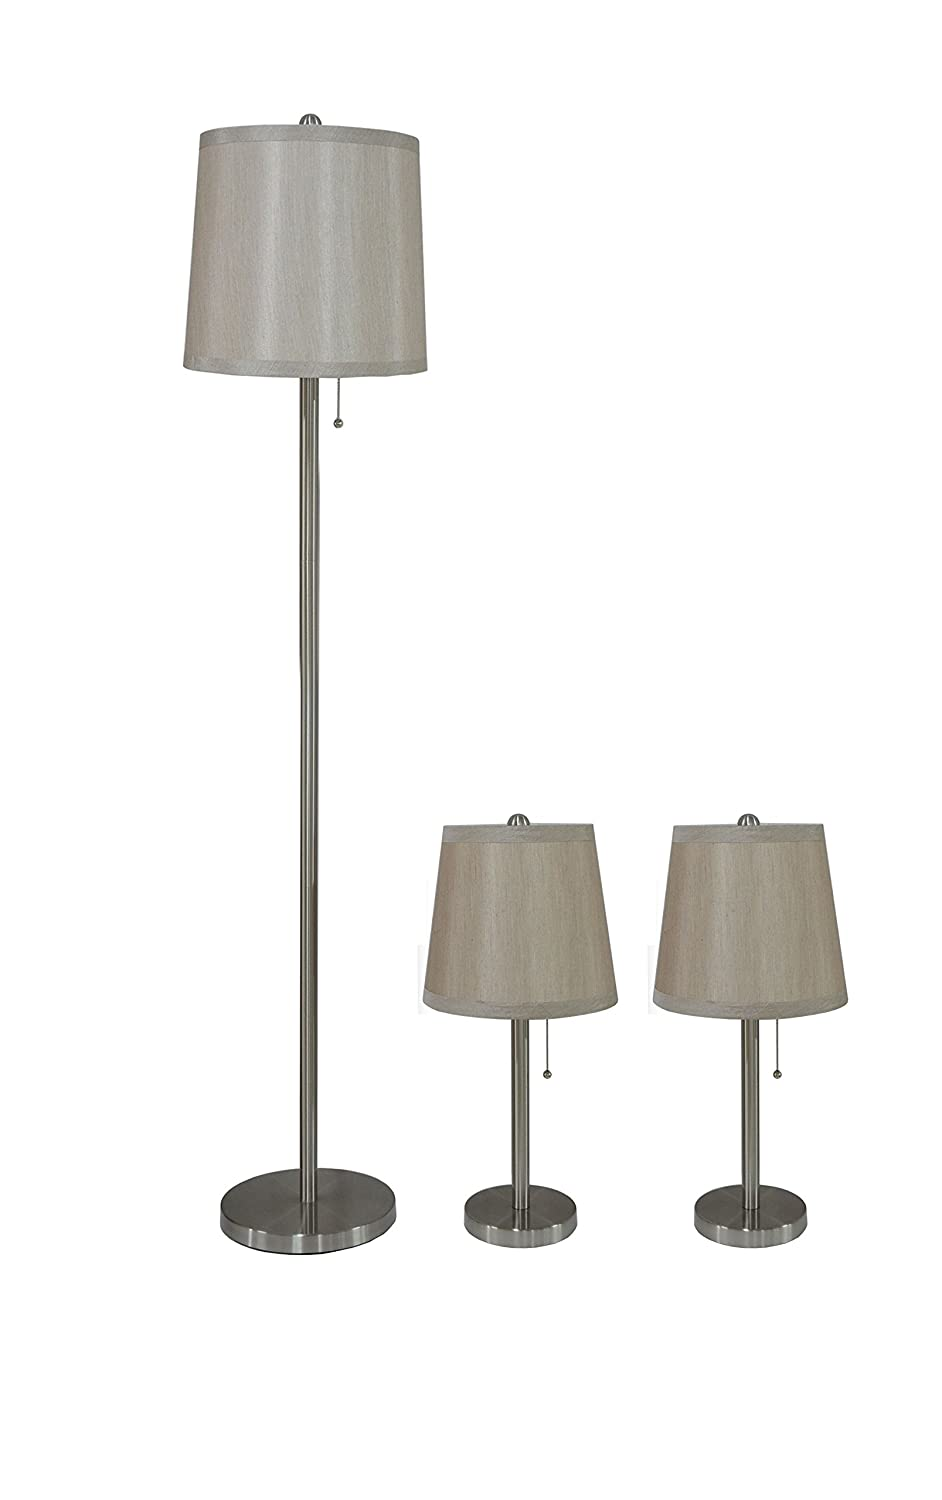 Urbanest Lamon 3-Piece Table and Floor Lamp Set in Brushed Nickel with Champagne Silk Lamp Shades